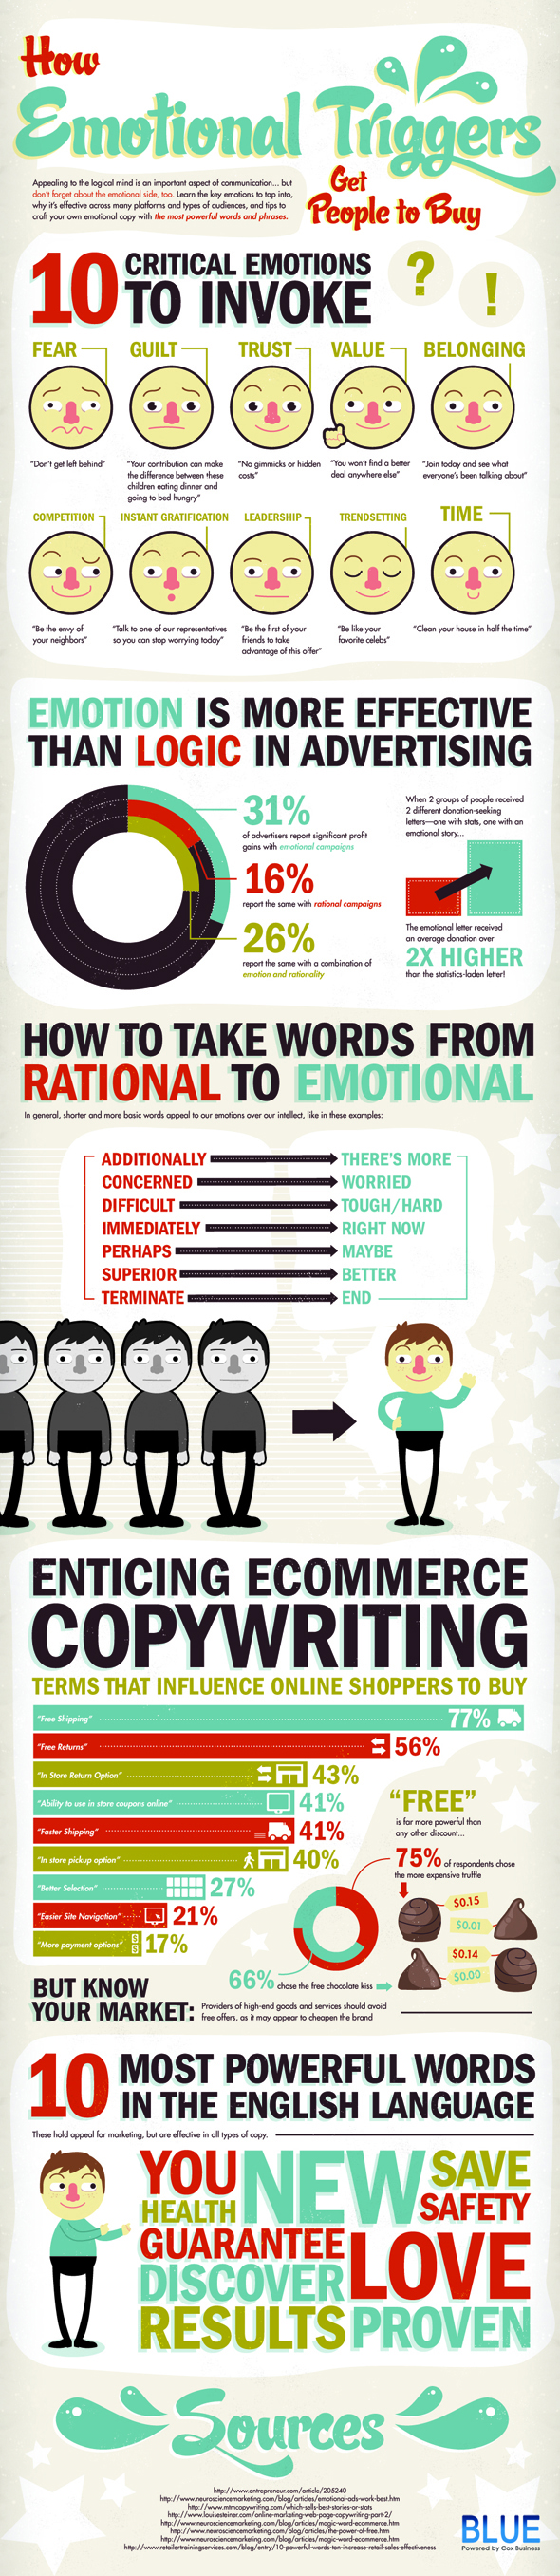 10 Critical Emotional Triggers Your Website Copy Must Invoke to Get People to Buy From You